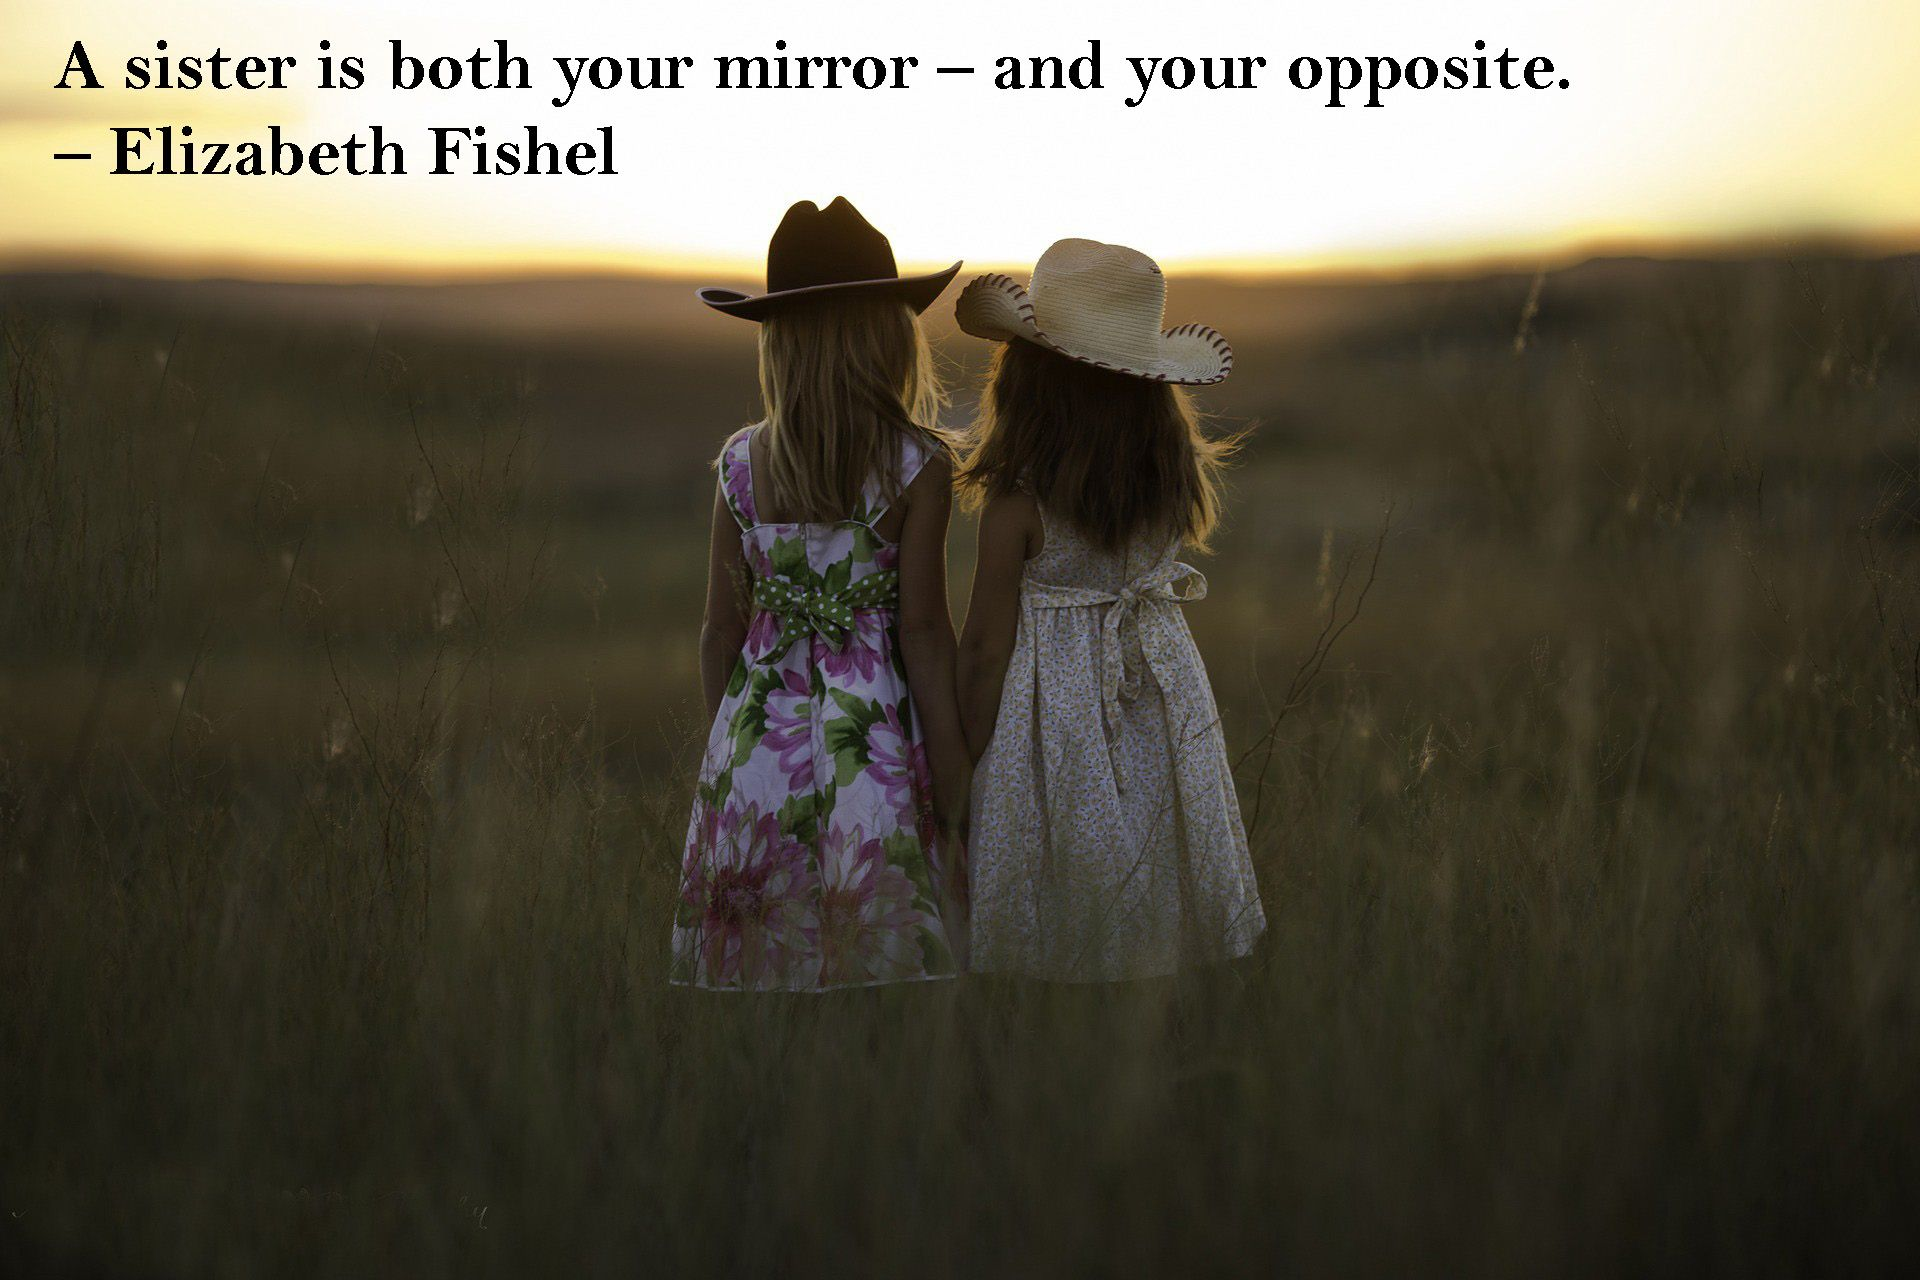 A sister is both your mirror and your opposite